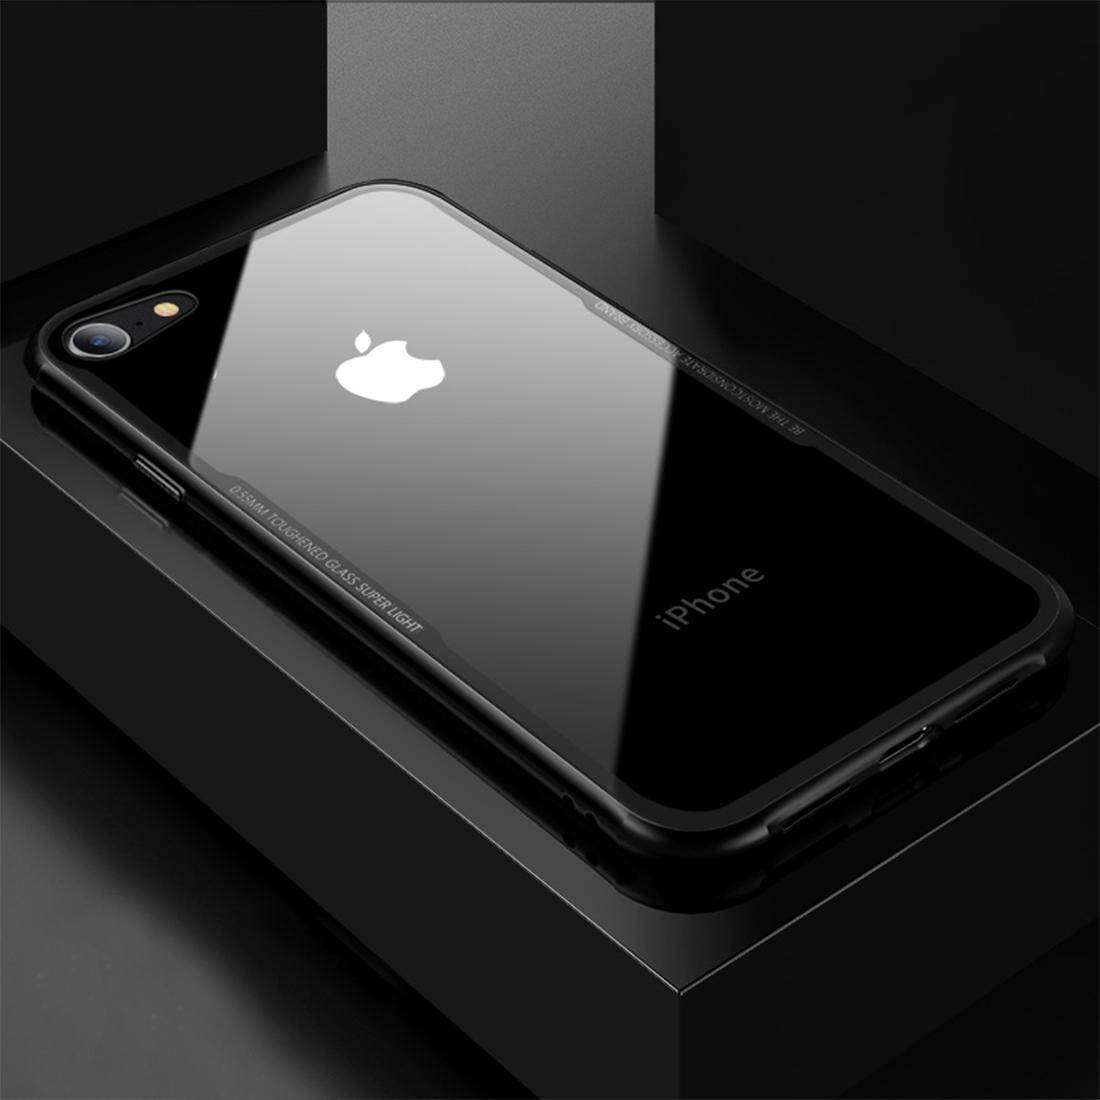 Bán Cafele For Iphone 8 And 7 Tpu Tempered Glass Shockproof Protective Back Cover Case Black Intl Có Thương Hiệu Nguyên